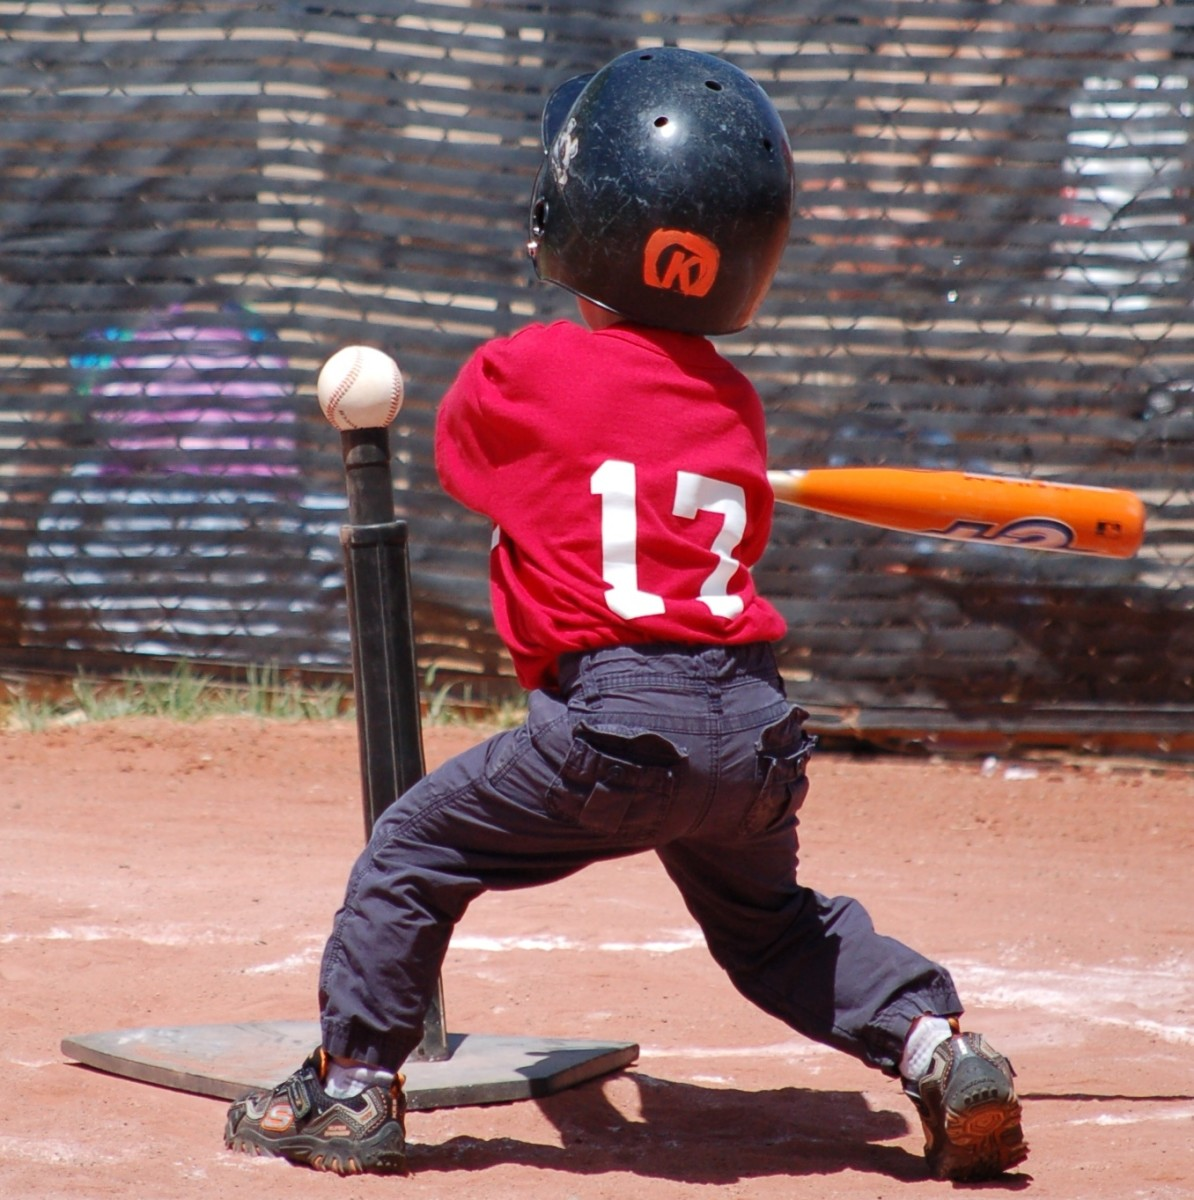 T-Ball Player up to Bat at the Tee